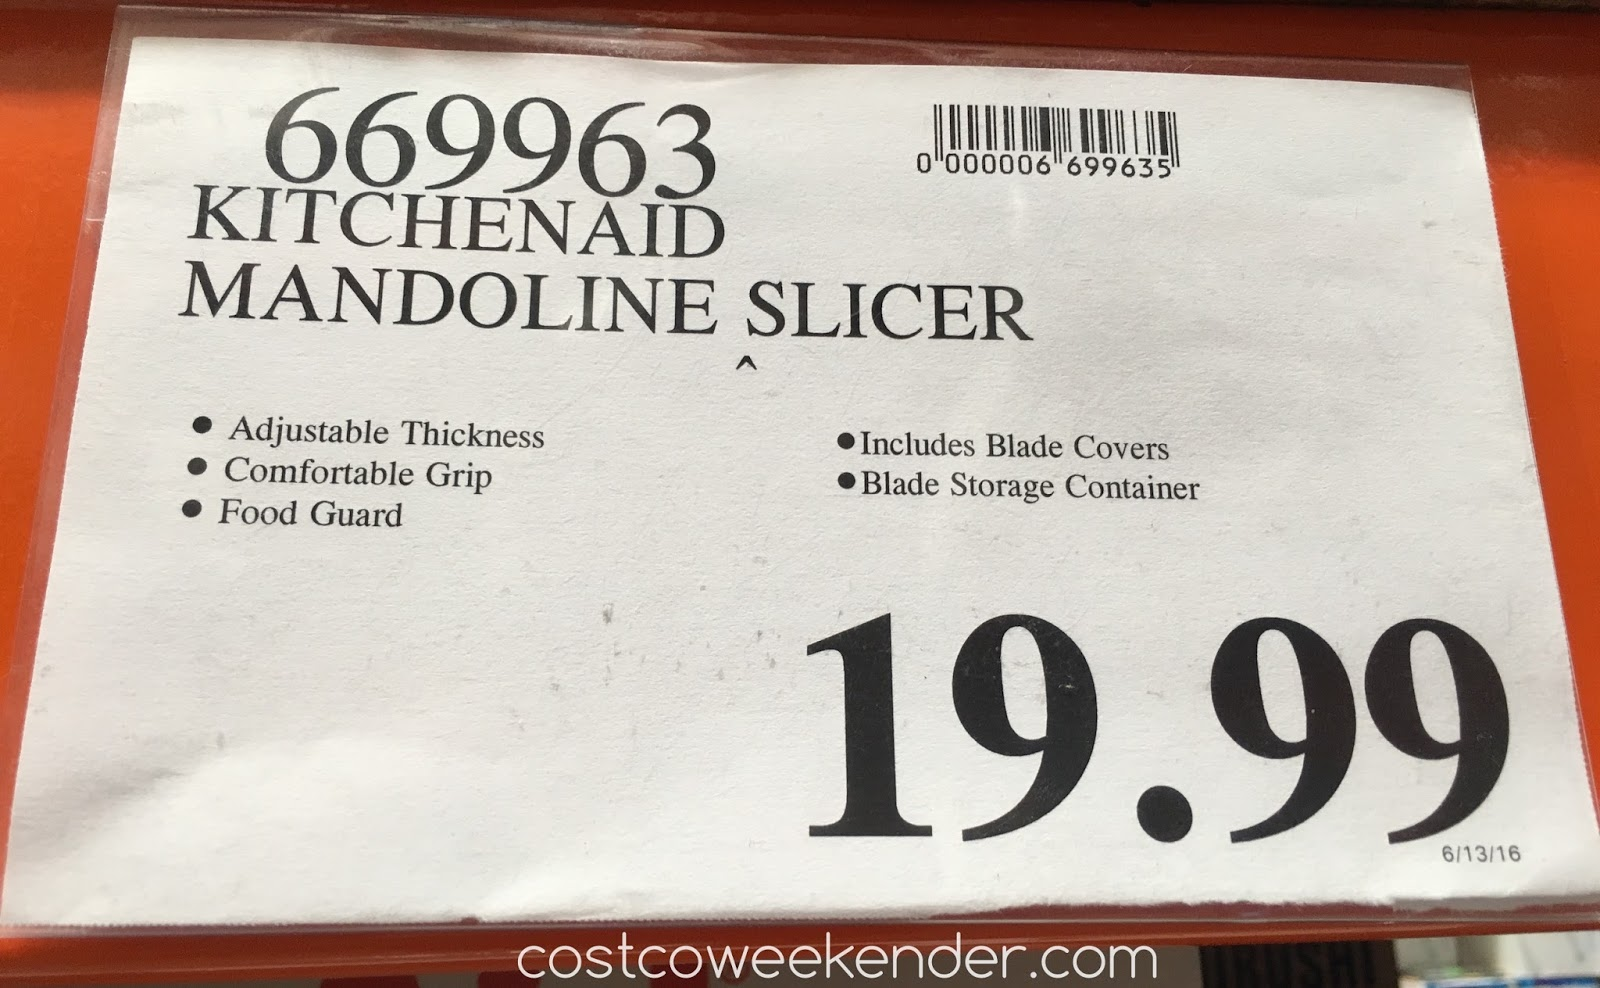 Deal For The Kitchenaid Mandoline Slicer Set At Costco